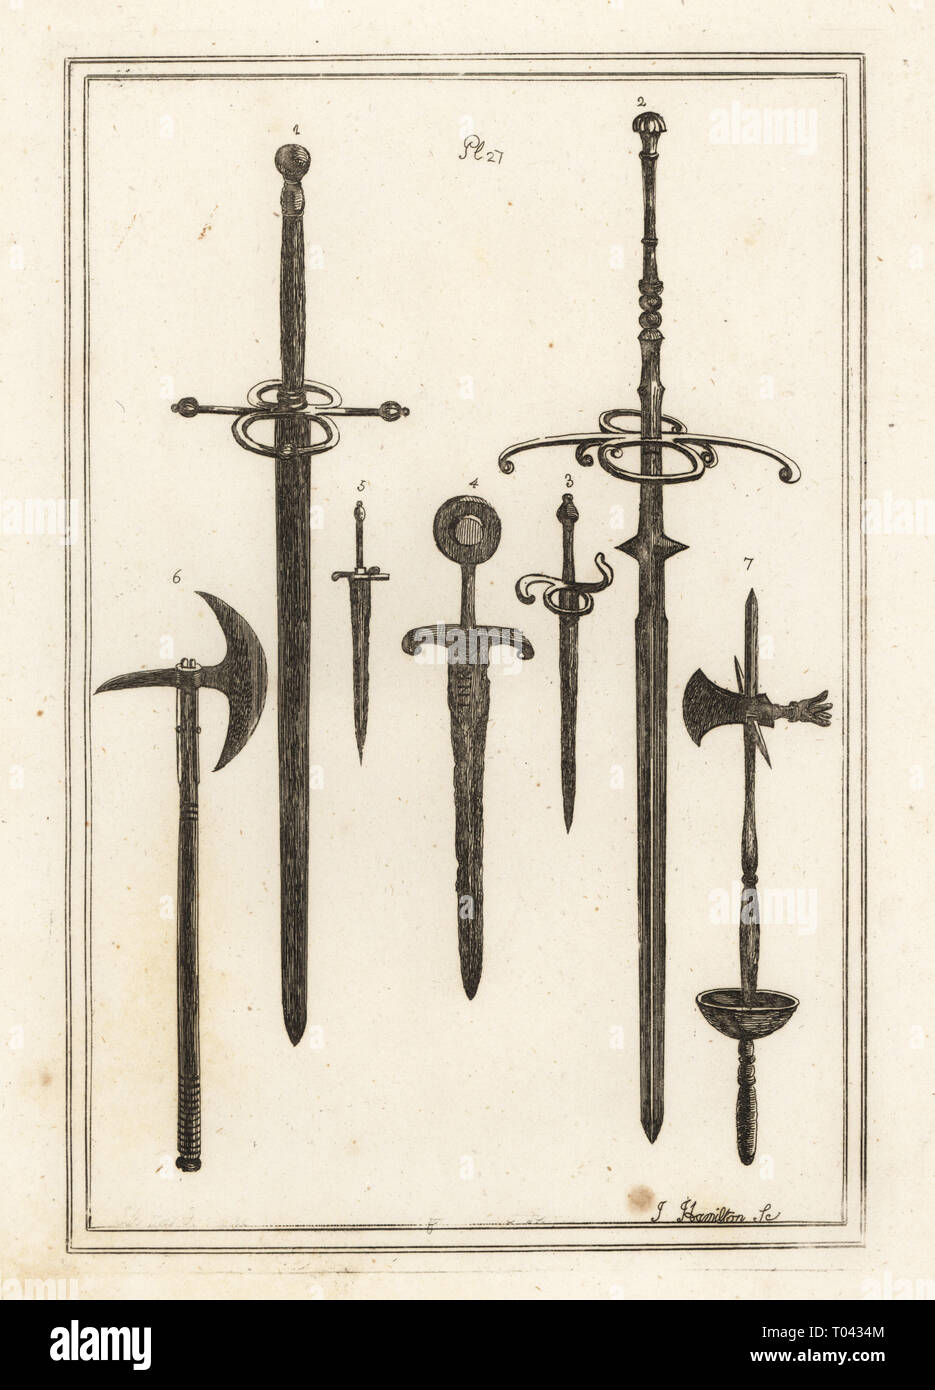 Two Handed Sword Stock Photos & Two Handed Sword Stock